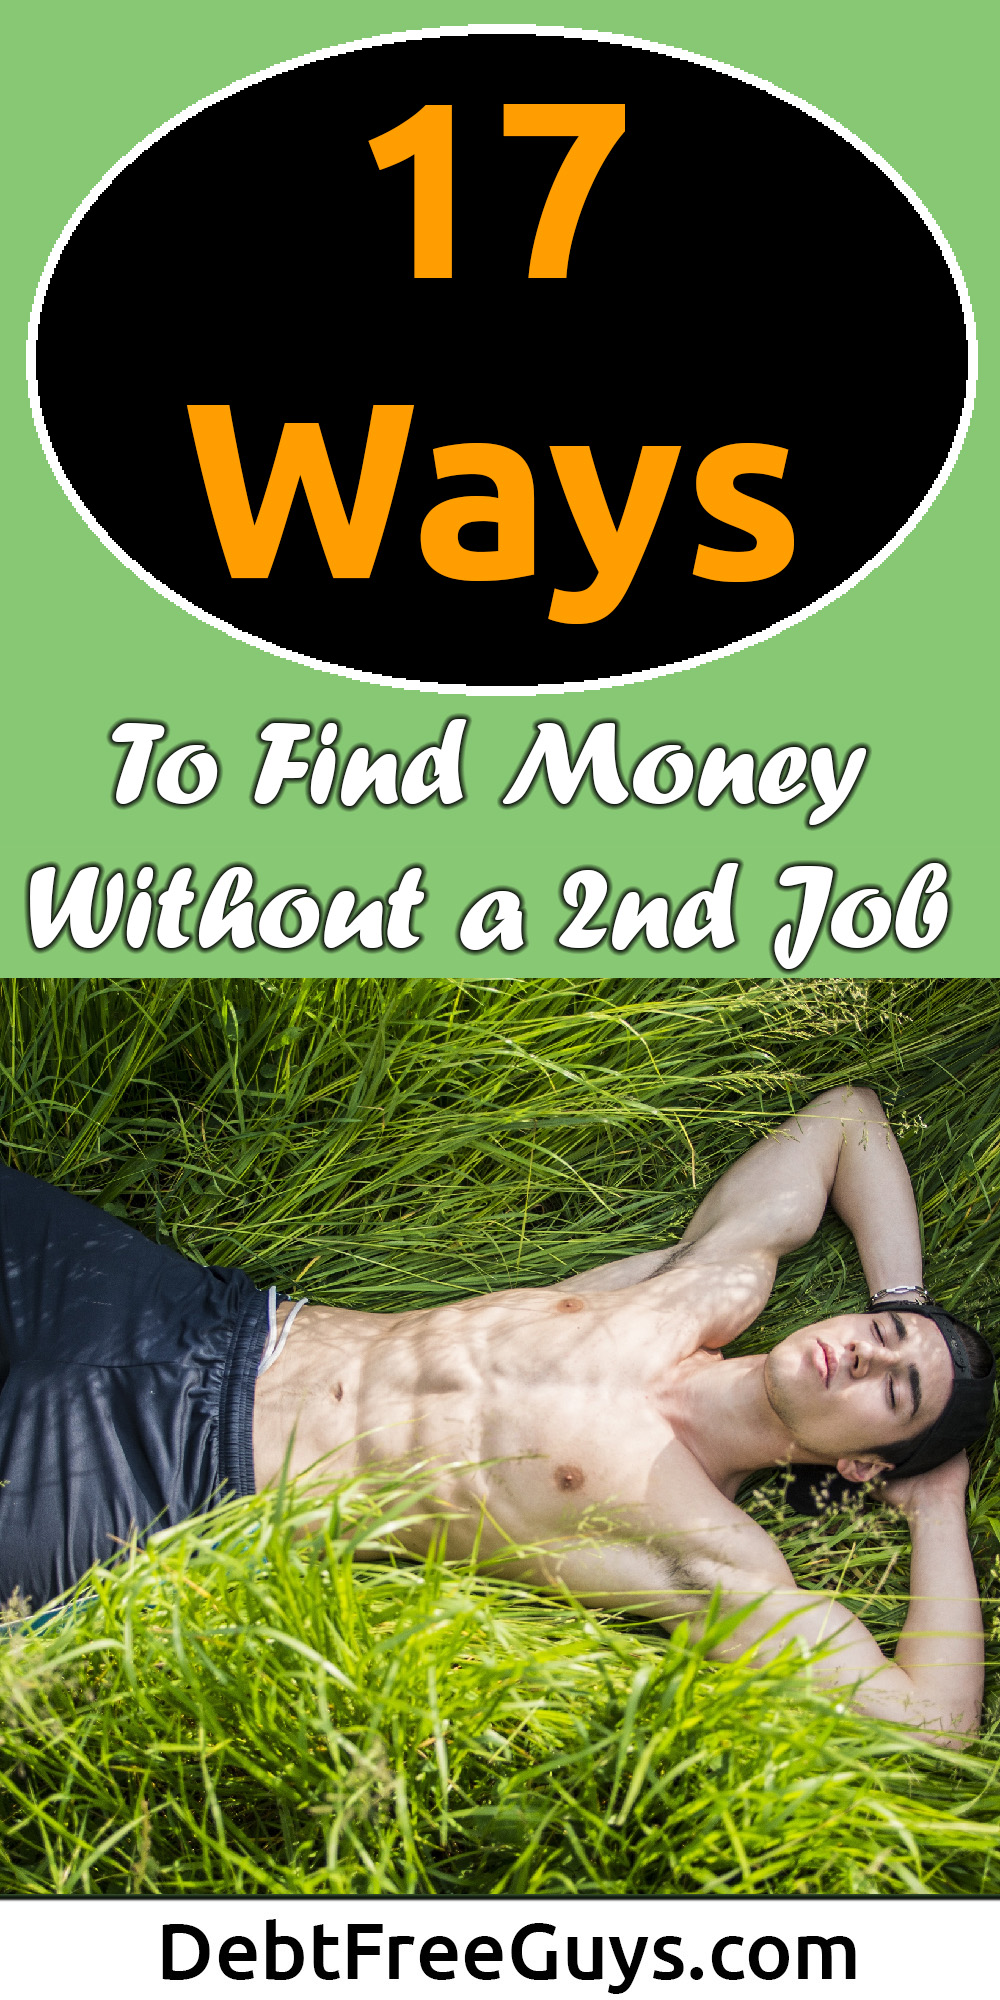 Want to find extra money without finding an extra job? Sure, we all do! Here are 17 ways to find extra money is all you need to make the money to be debt free. Share with 17 friends to make their day.